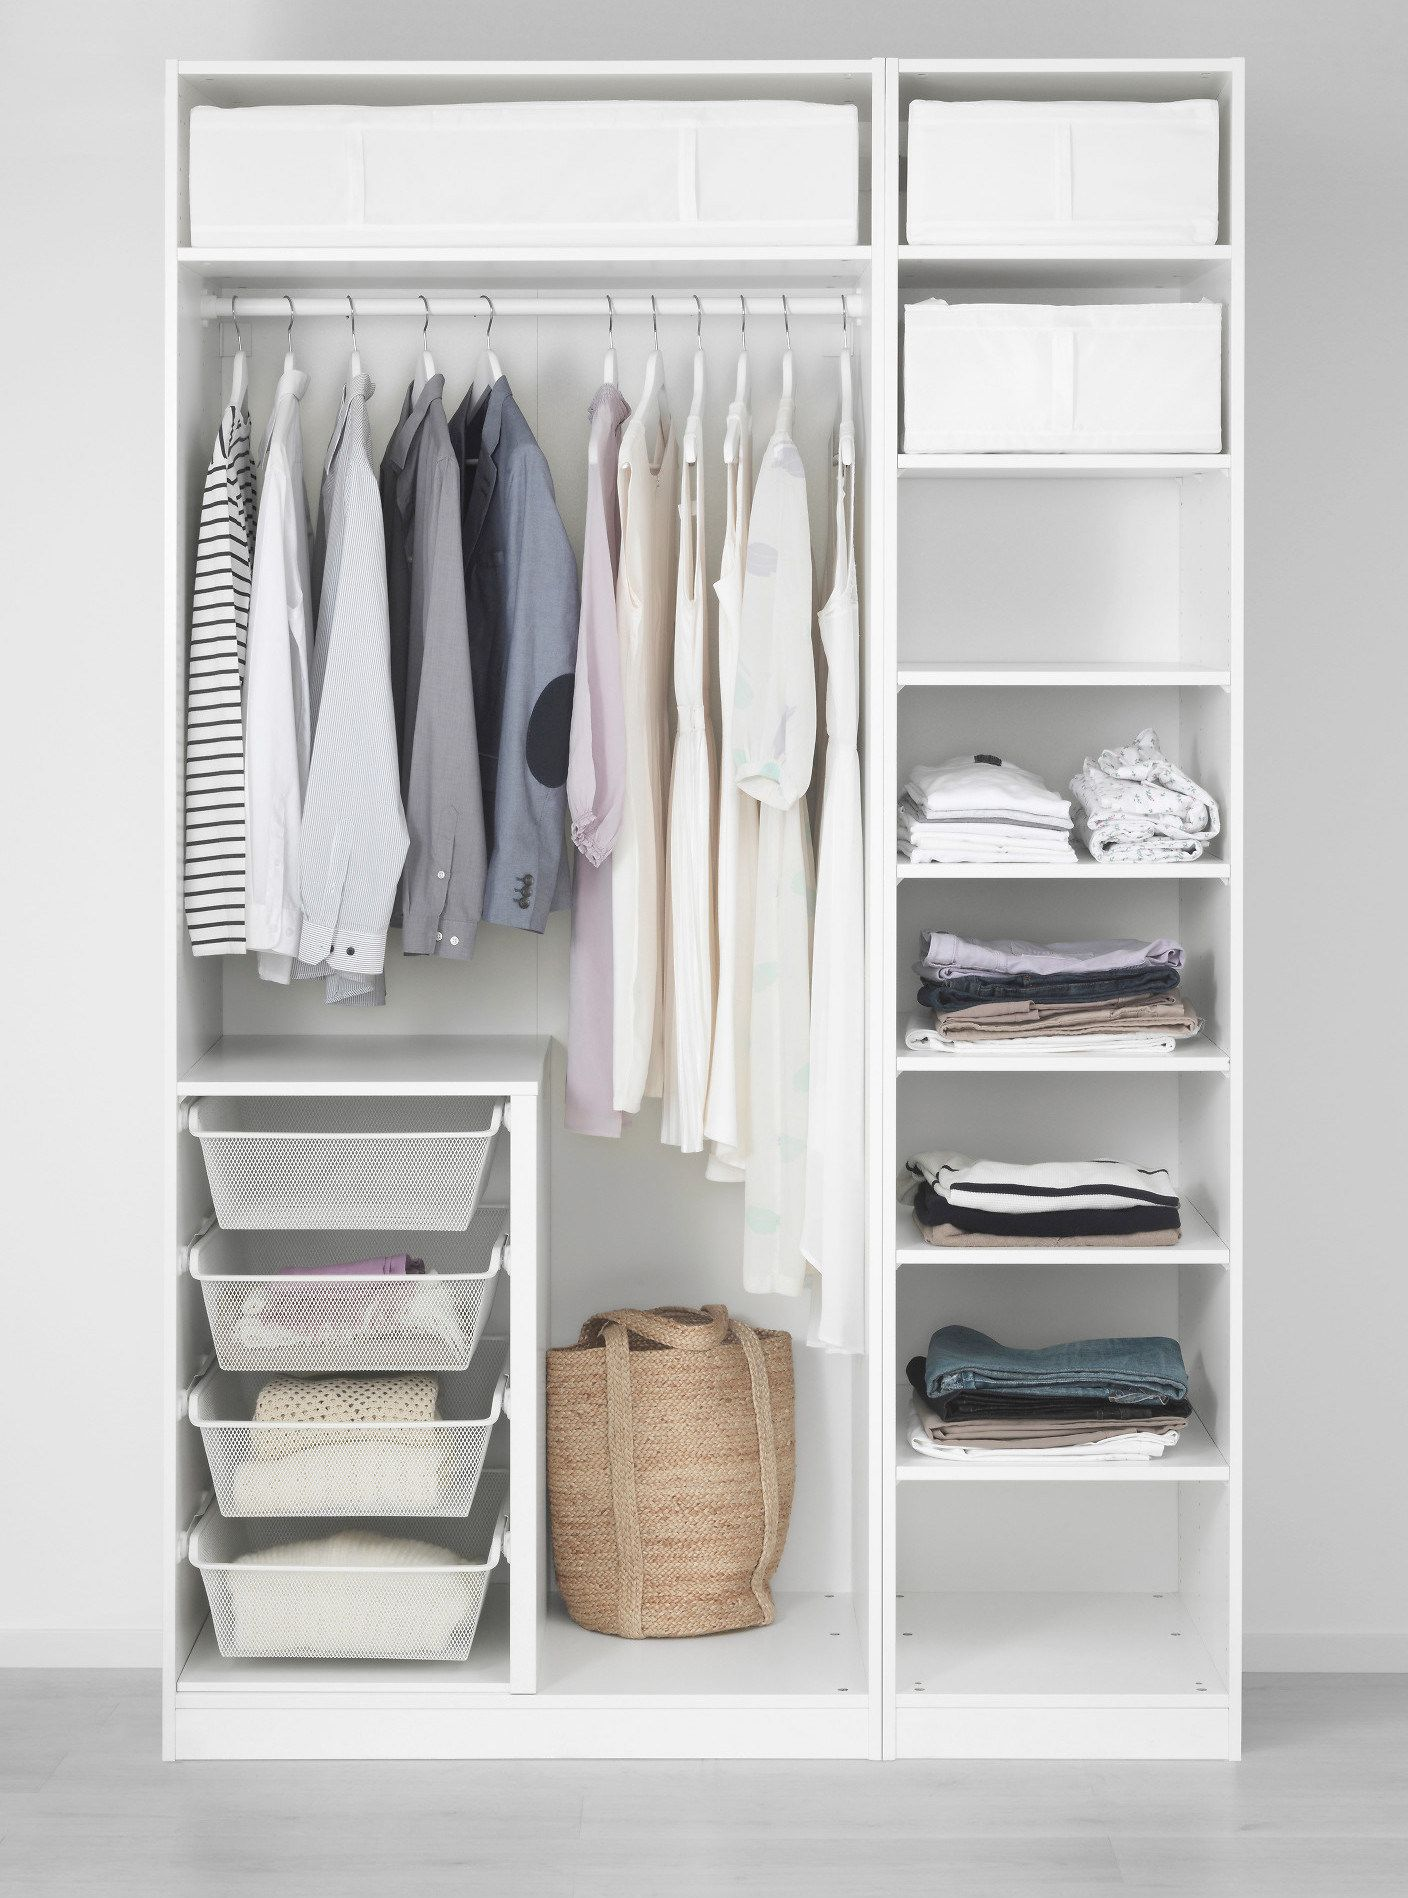 Best Closet Systems 10 Best Closet Systems According To Architects And Interior